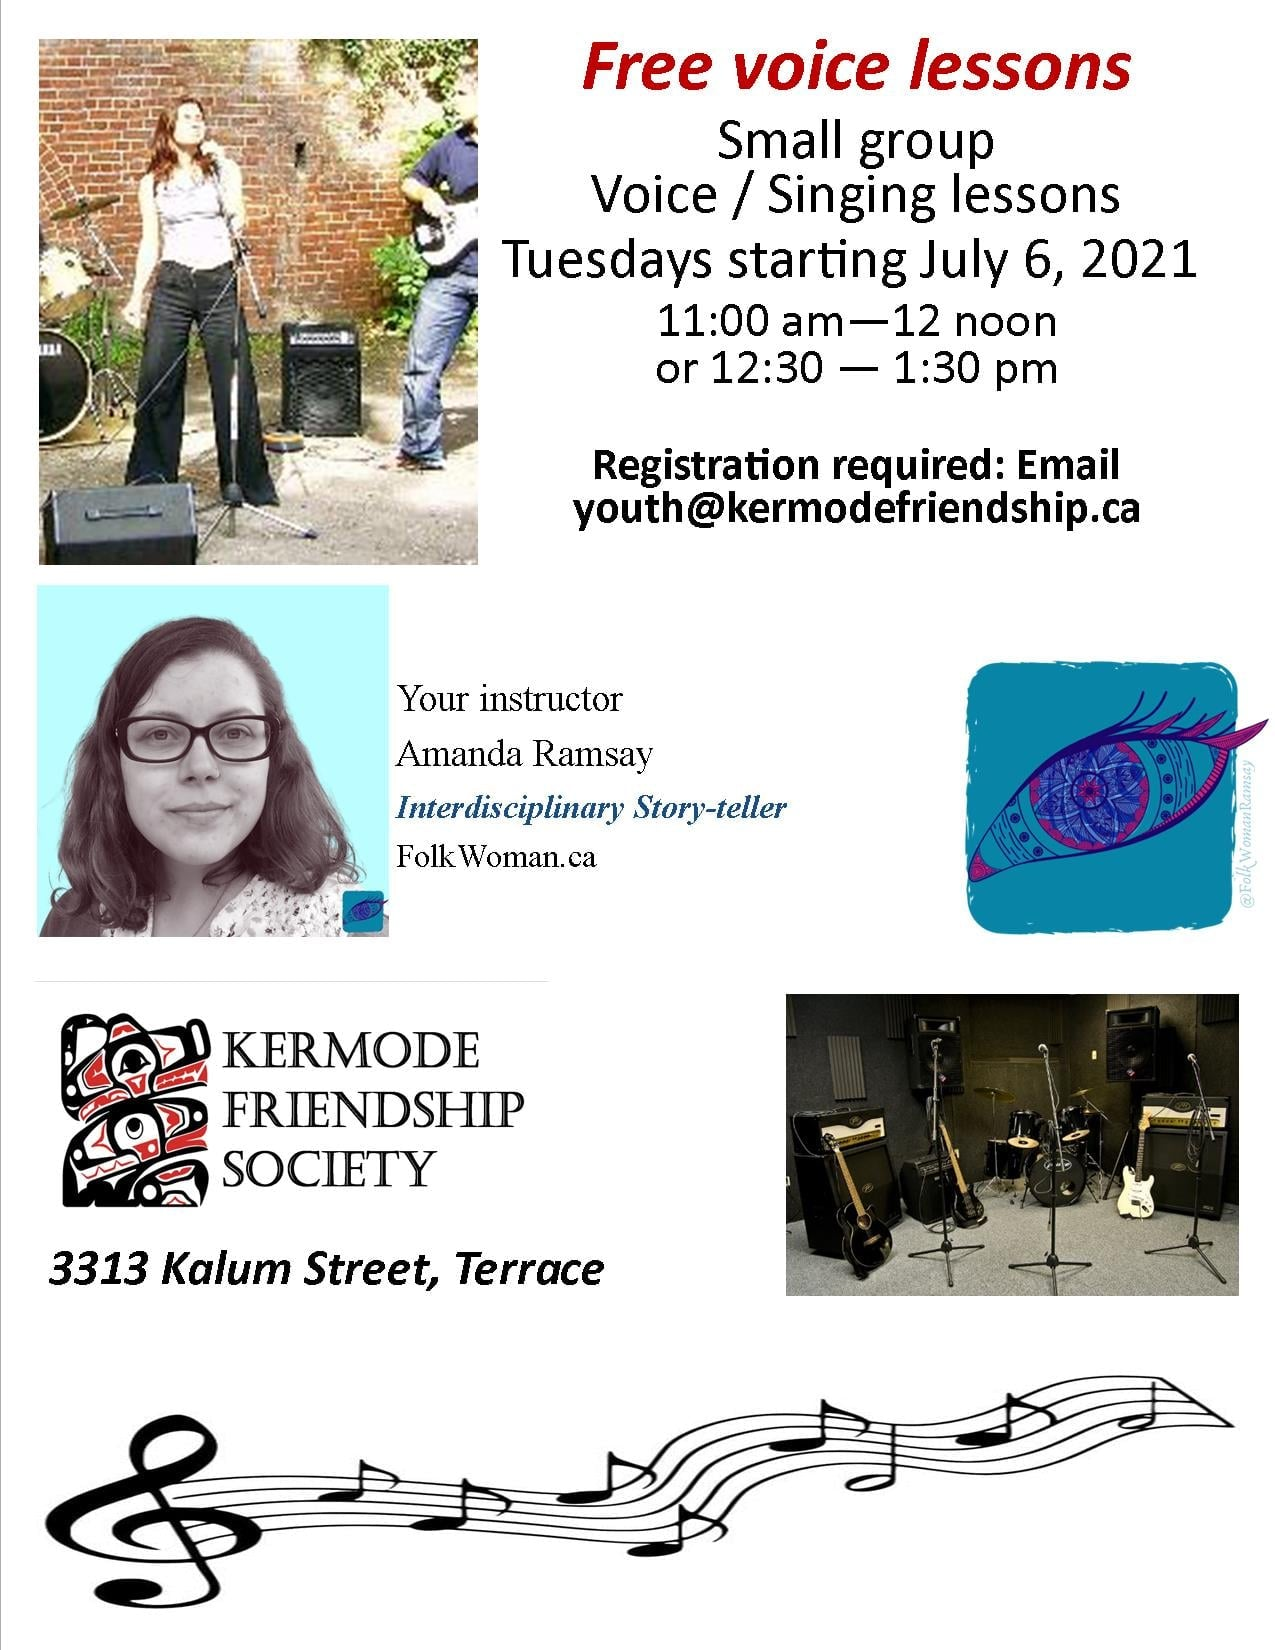 Kermode Friendship Society Digital Flyer: Free Voice Lessons, Small Group Voice / Singing Lessons, Tuesday starting July 6th, 2021, 11am-12noon for youth, or 12:30-to-1:30pm for teens. Registration required. Email youth@kermodefriendship.ca; Your instructor (is) Amanda Ramsay, Interdisciplinary Storyteller, folkwoman.ca. Kermode Friendship Society, 313 Kalum Street, Terrace, BC. An image of a youth singing at a microphone is featured first on a white background. Below that is an image of Amanda Ramsay, the instructor listed with a teal background. To the Right is her logo, the Teal Knowing Eye. The Kermode Friendship Society Logo is below the Instructor's image, and below the her logo is an image of chairs with music stands. At the bottom is an image of a musical scale with a treble clef with six quarter notes and two half notes.